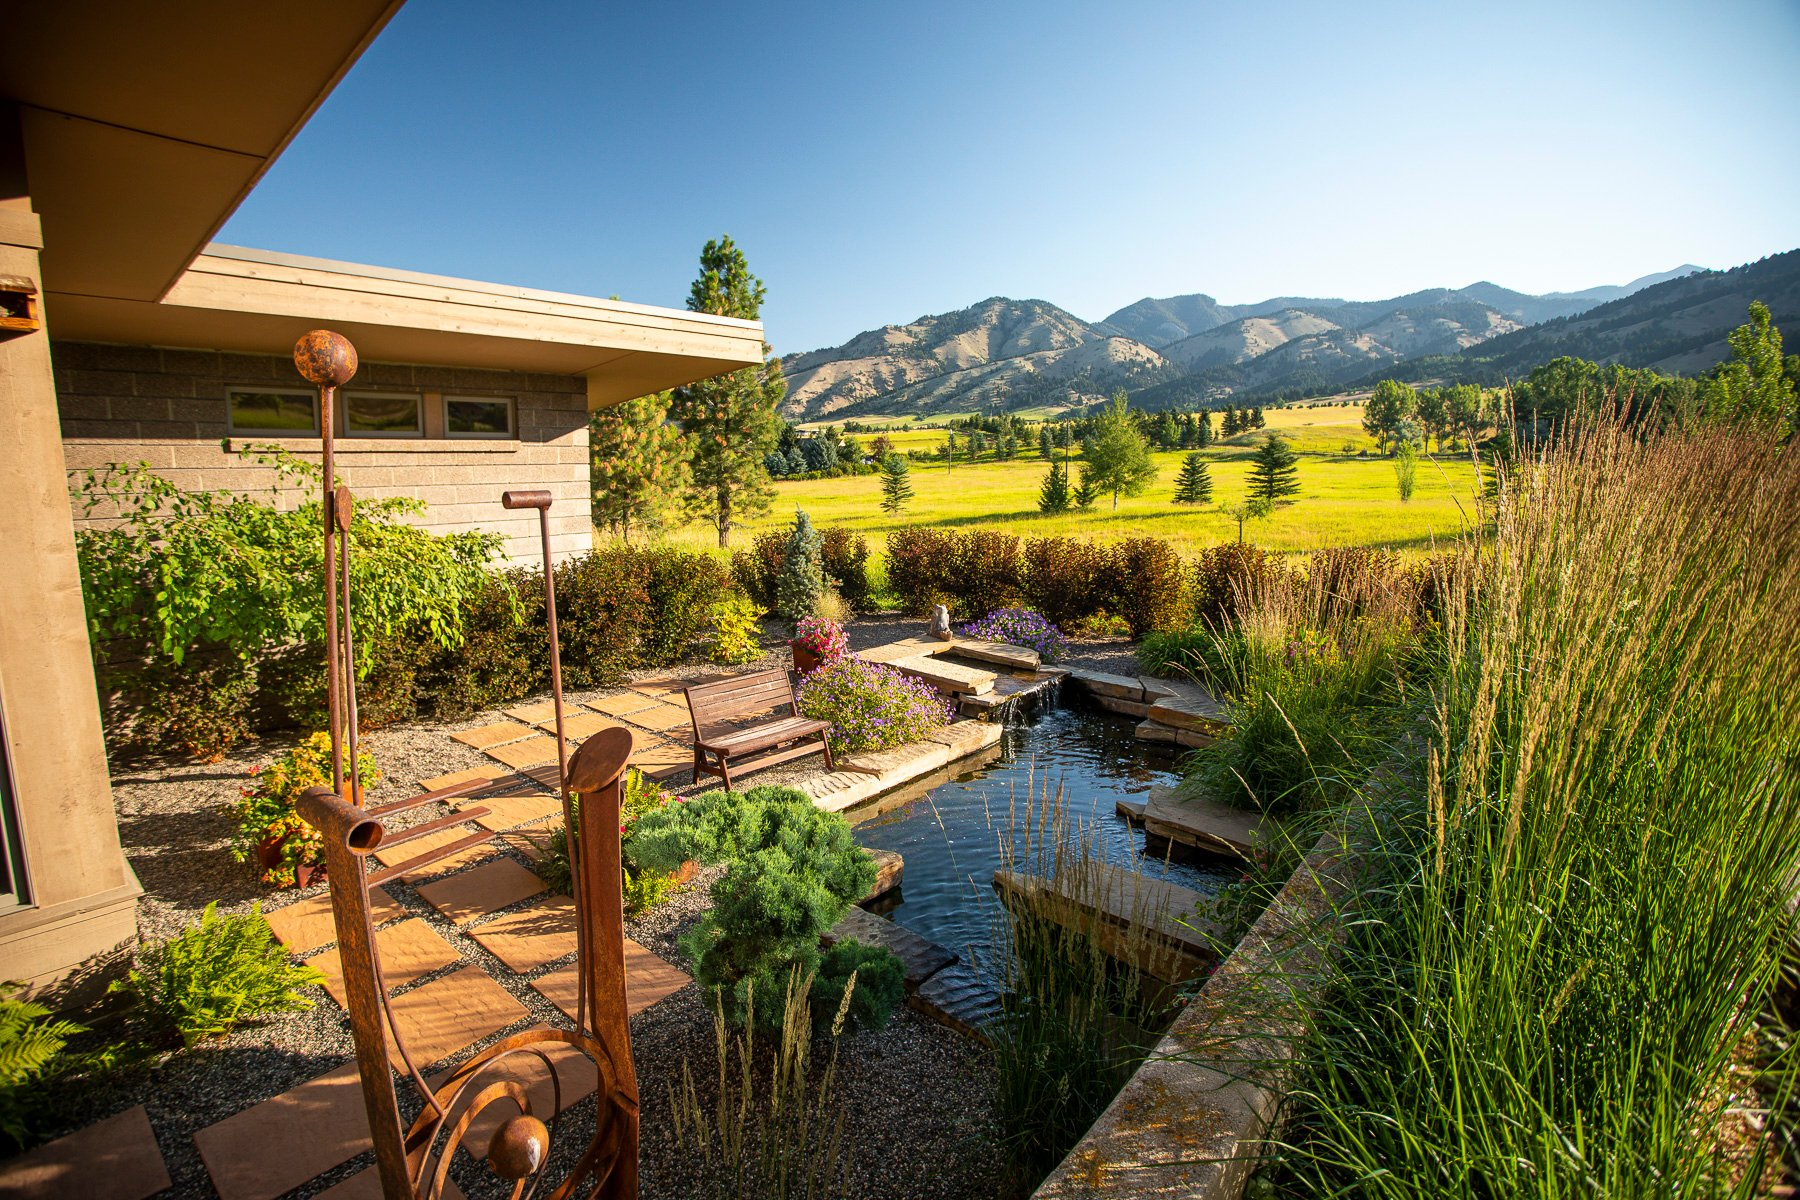 Fish pond water feature in Montana